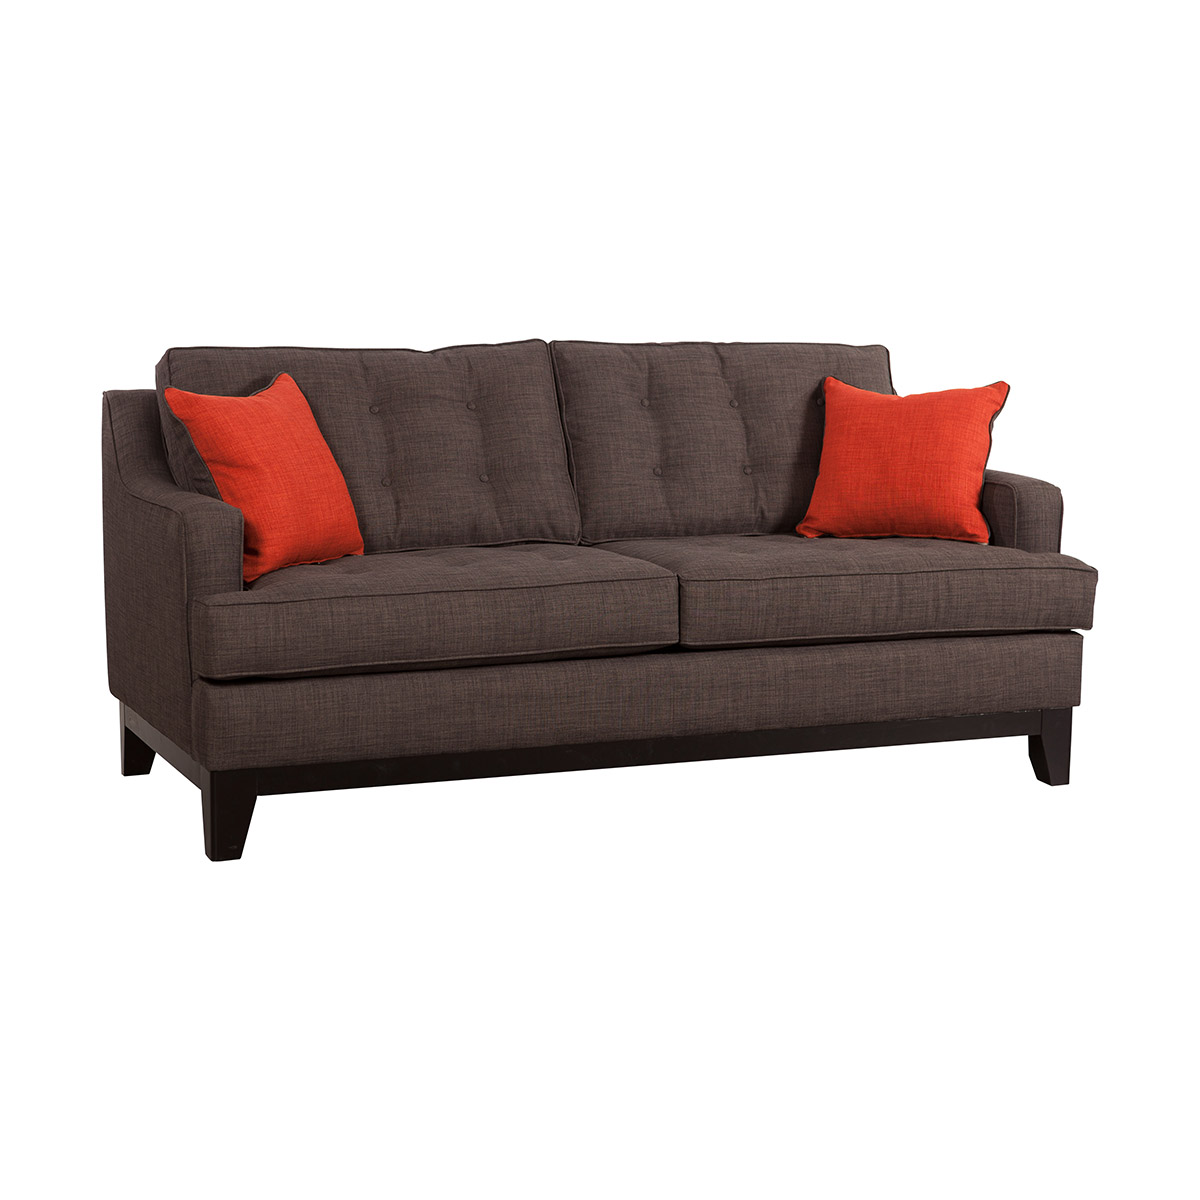 burnt orange sofa and loveseat cream colored sofas zuo chicago in charcoal boost home